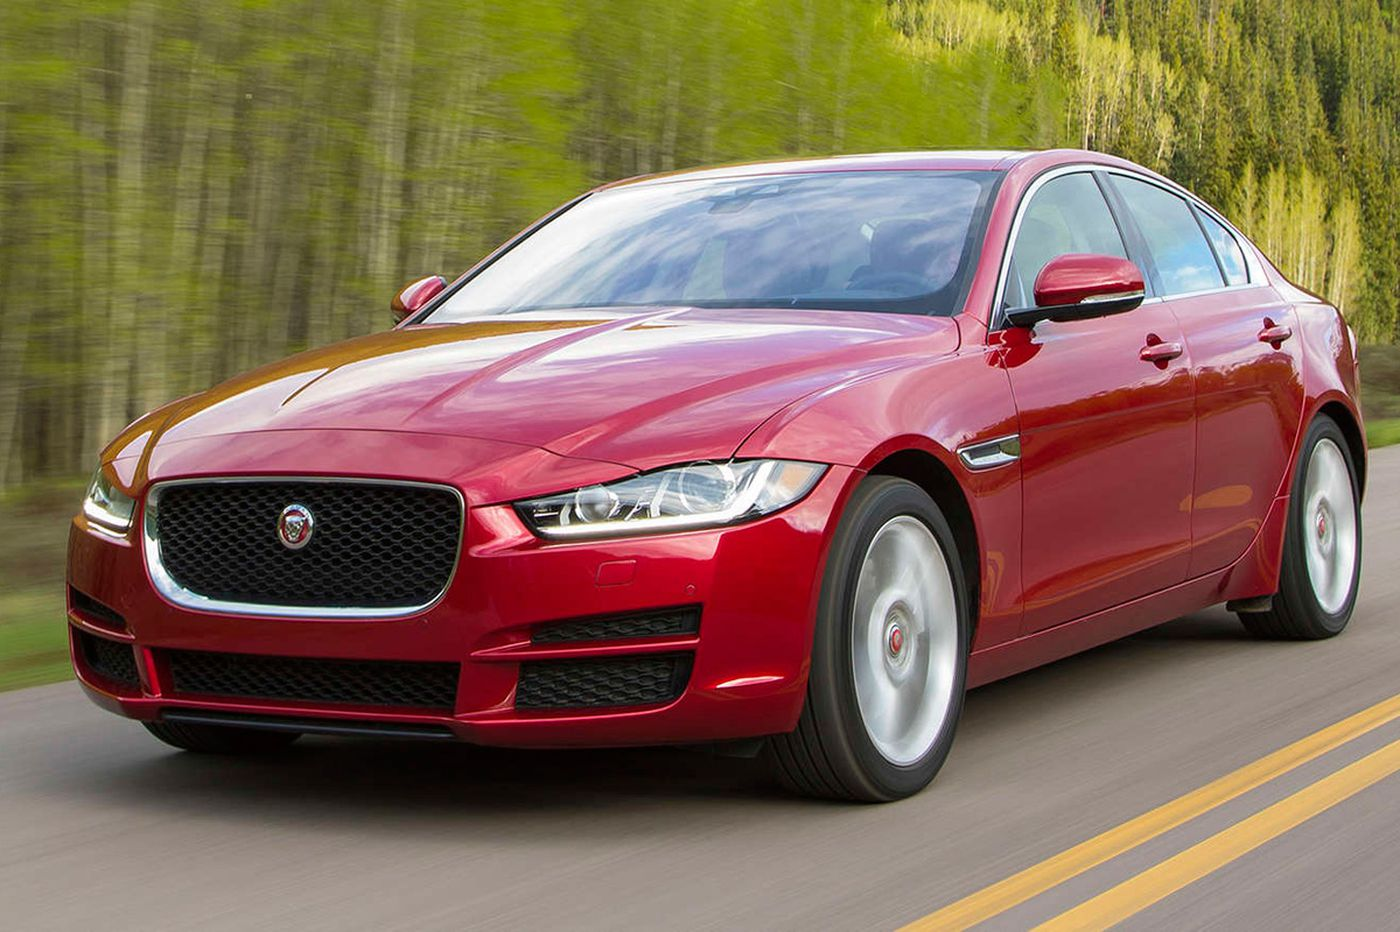 From Jaguar, two smooth, agile luxury cars